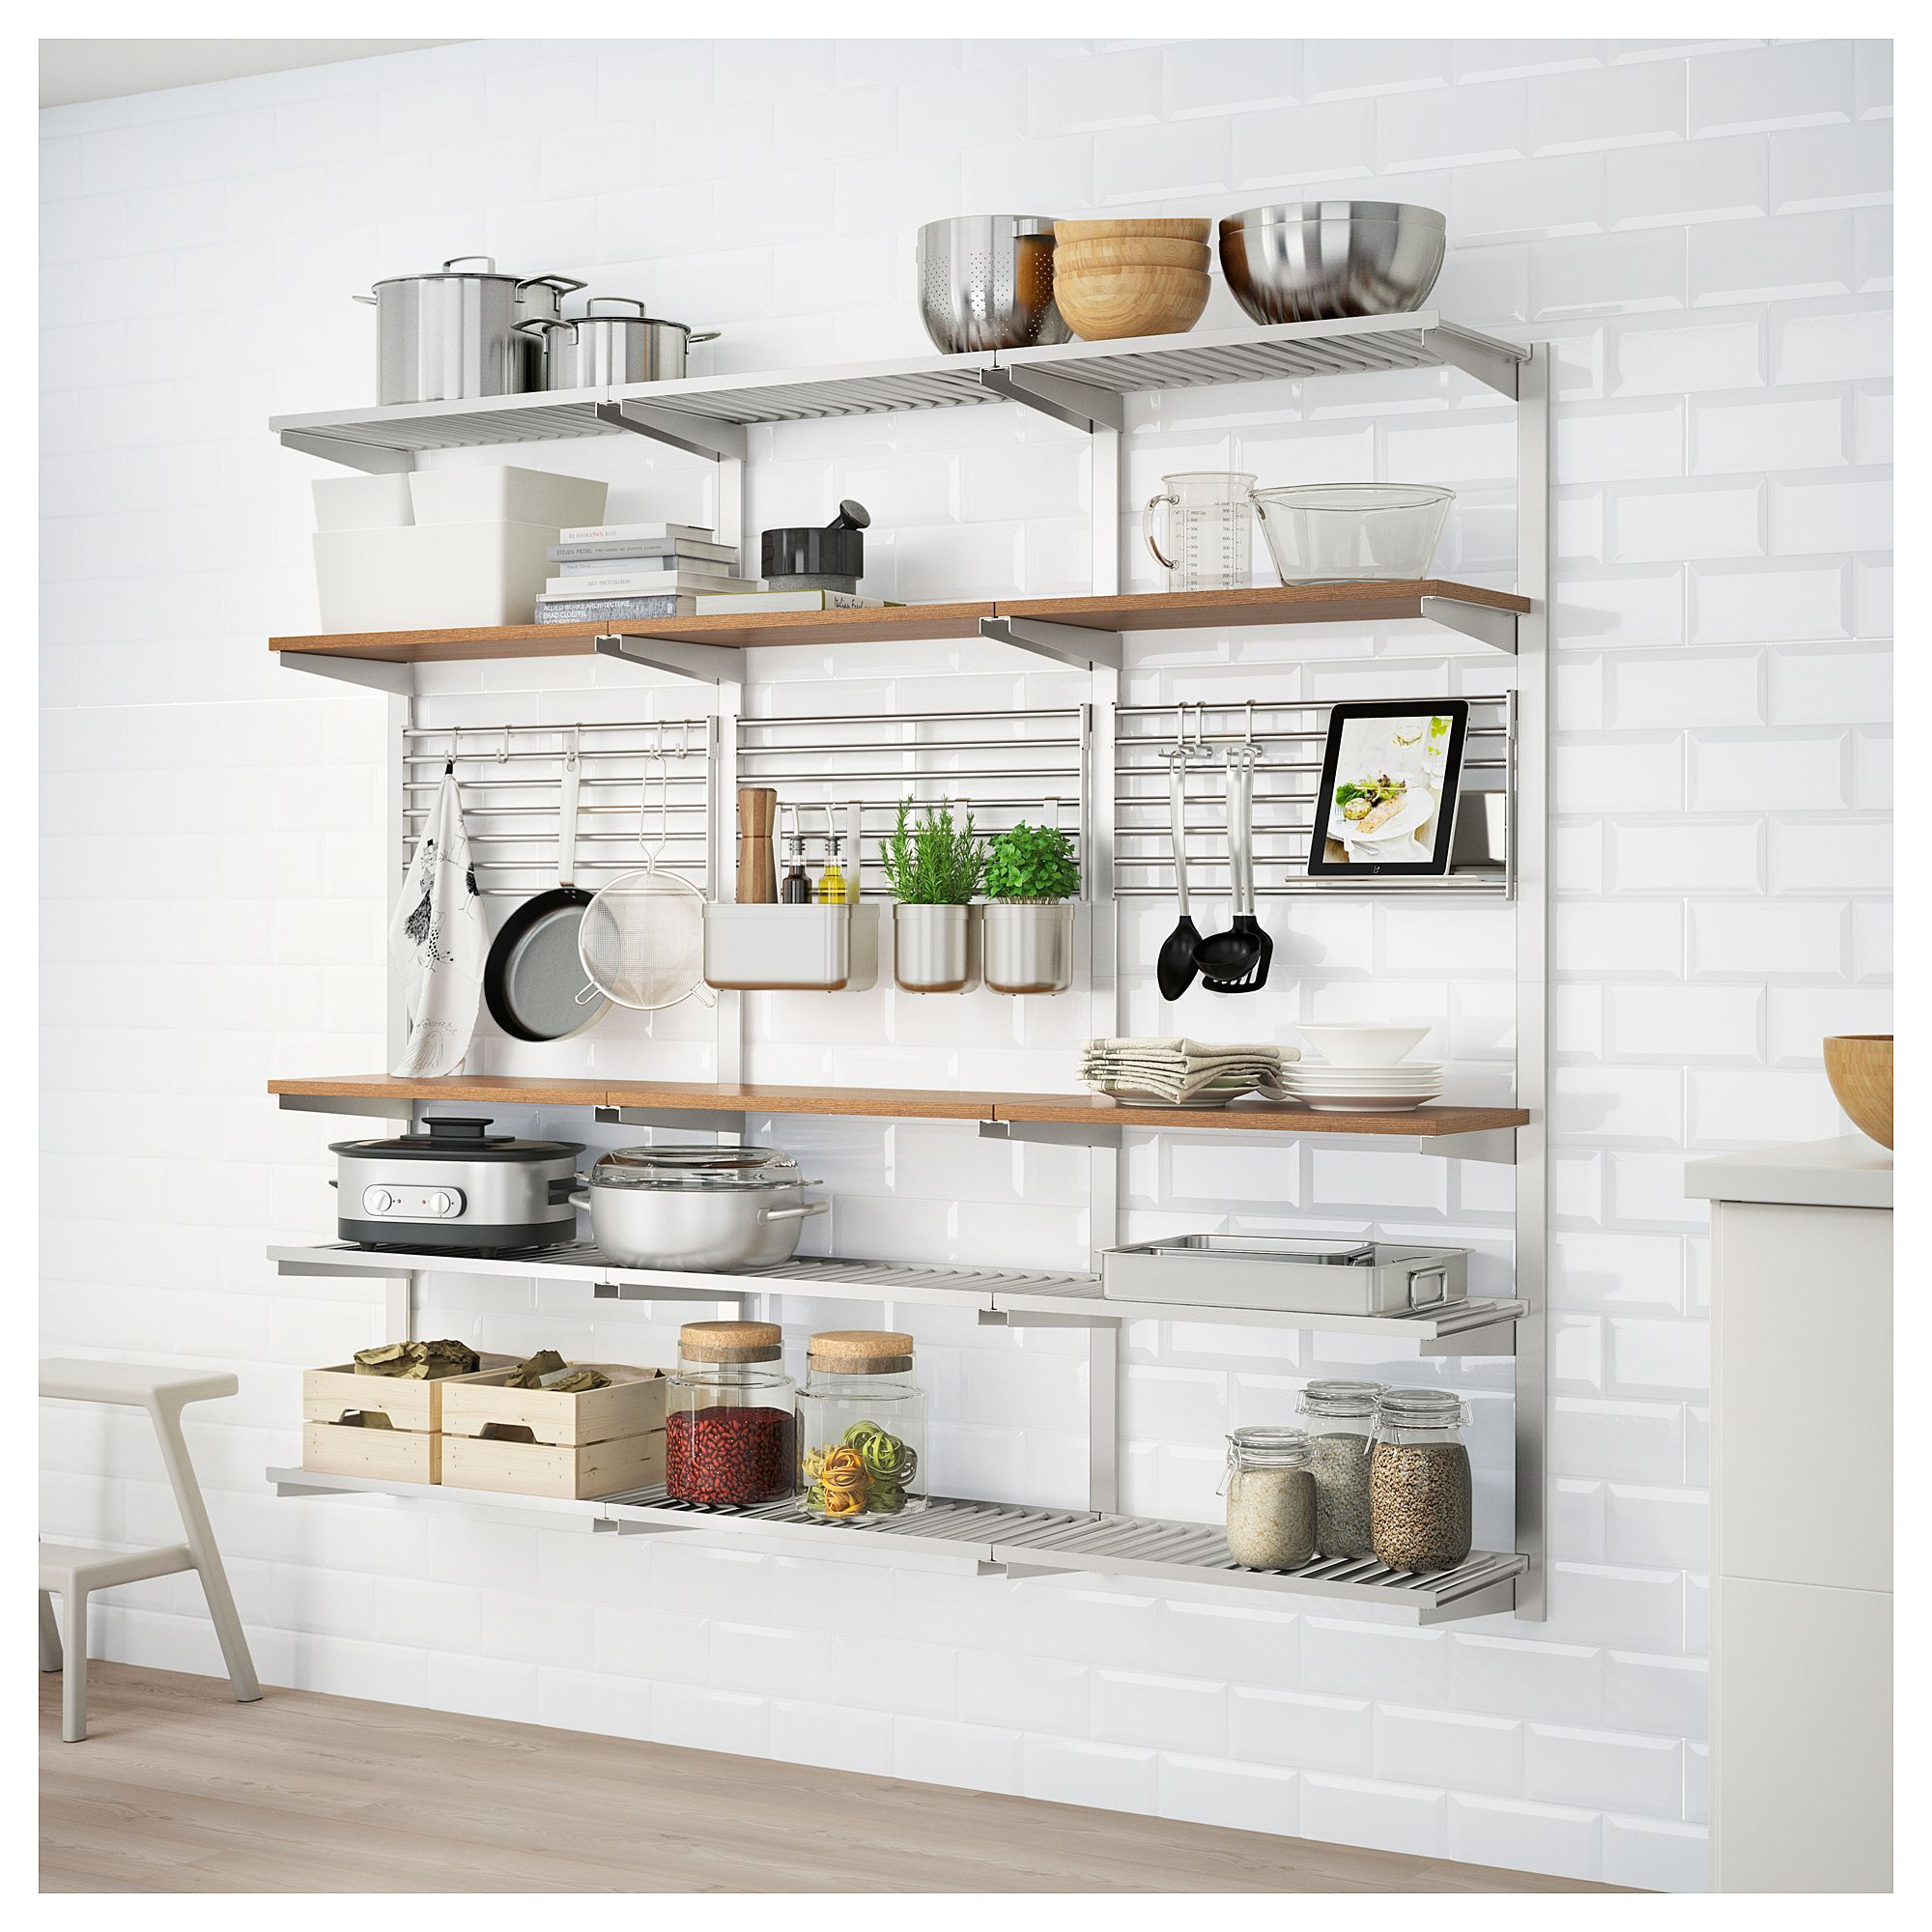 Ikea Kungsfors Suspension Rail With Shelf Wll Grid Stainless